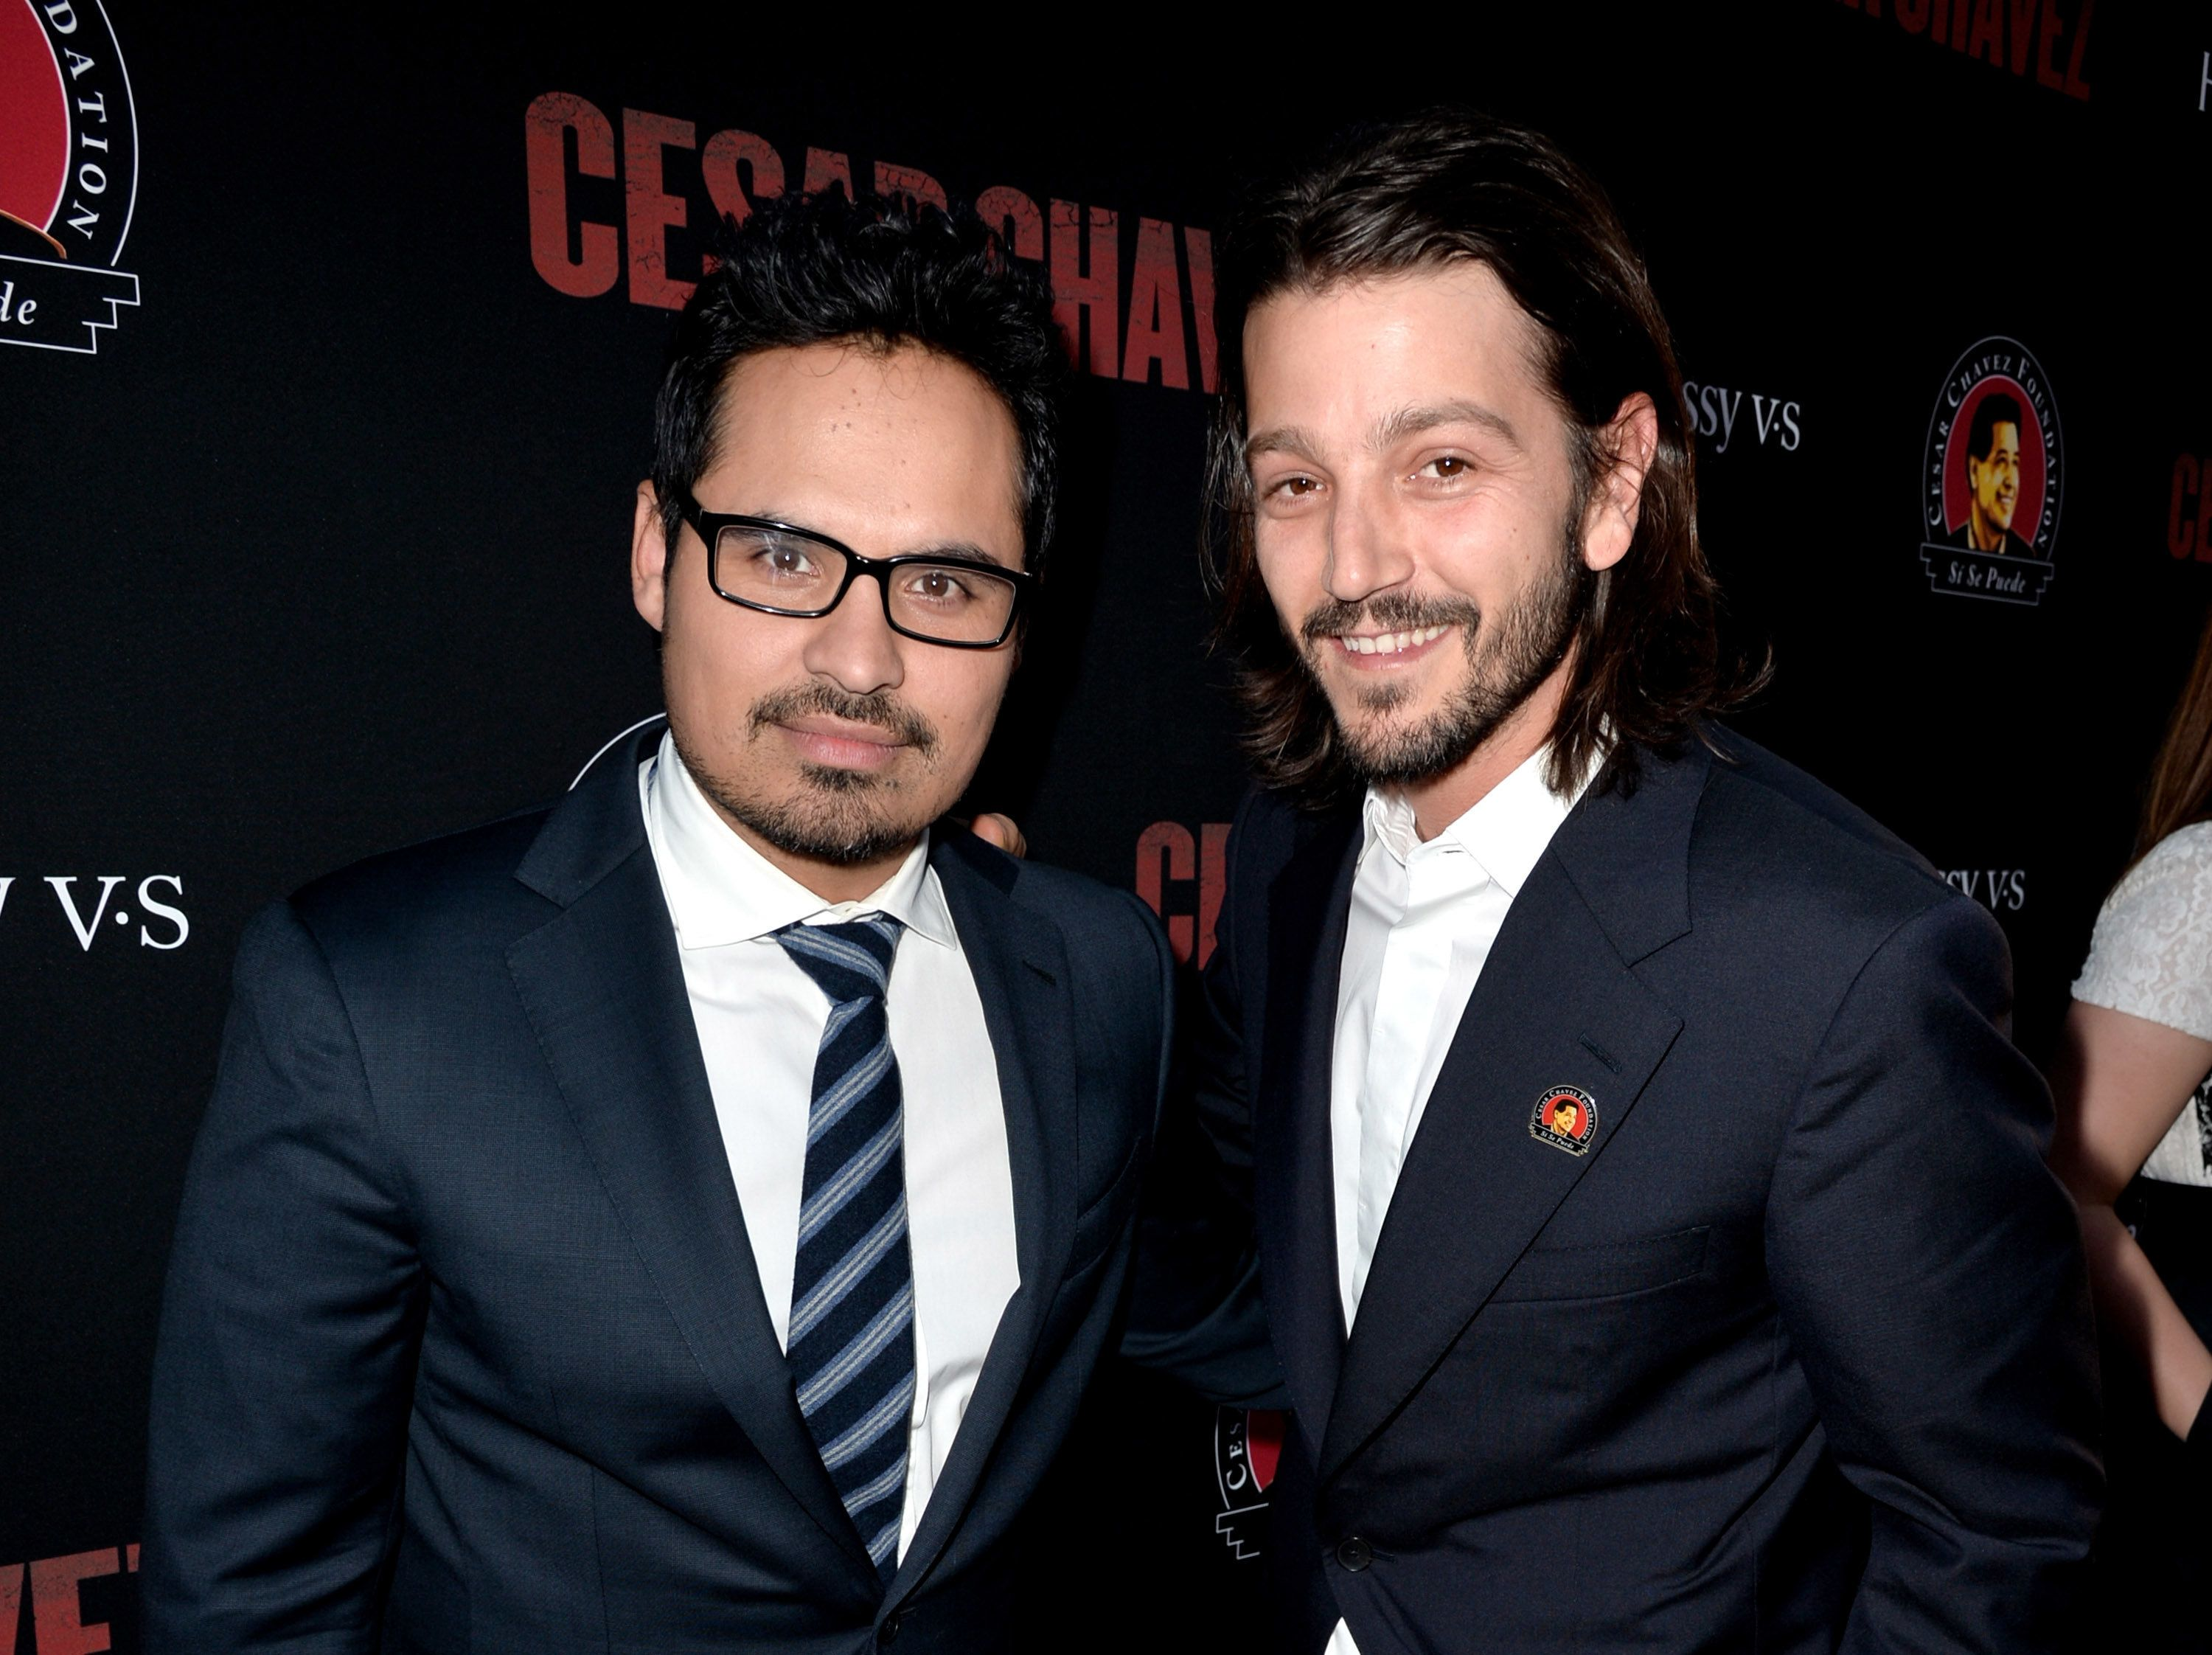 LOS ANGELES, CA - MARCH 20:  Actor Michael Pena (L) and director Diego Luna arrive at the premiere of Pantelion Films And Participant Media's 'Cesar Chavez' at the Chinese Theatre on March 20, 2014 in Los Angeles, California.  (Photo by Kevin Winter/Getty Images)